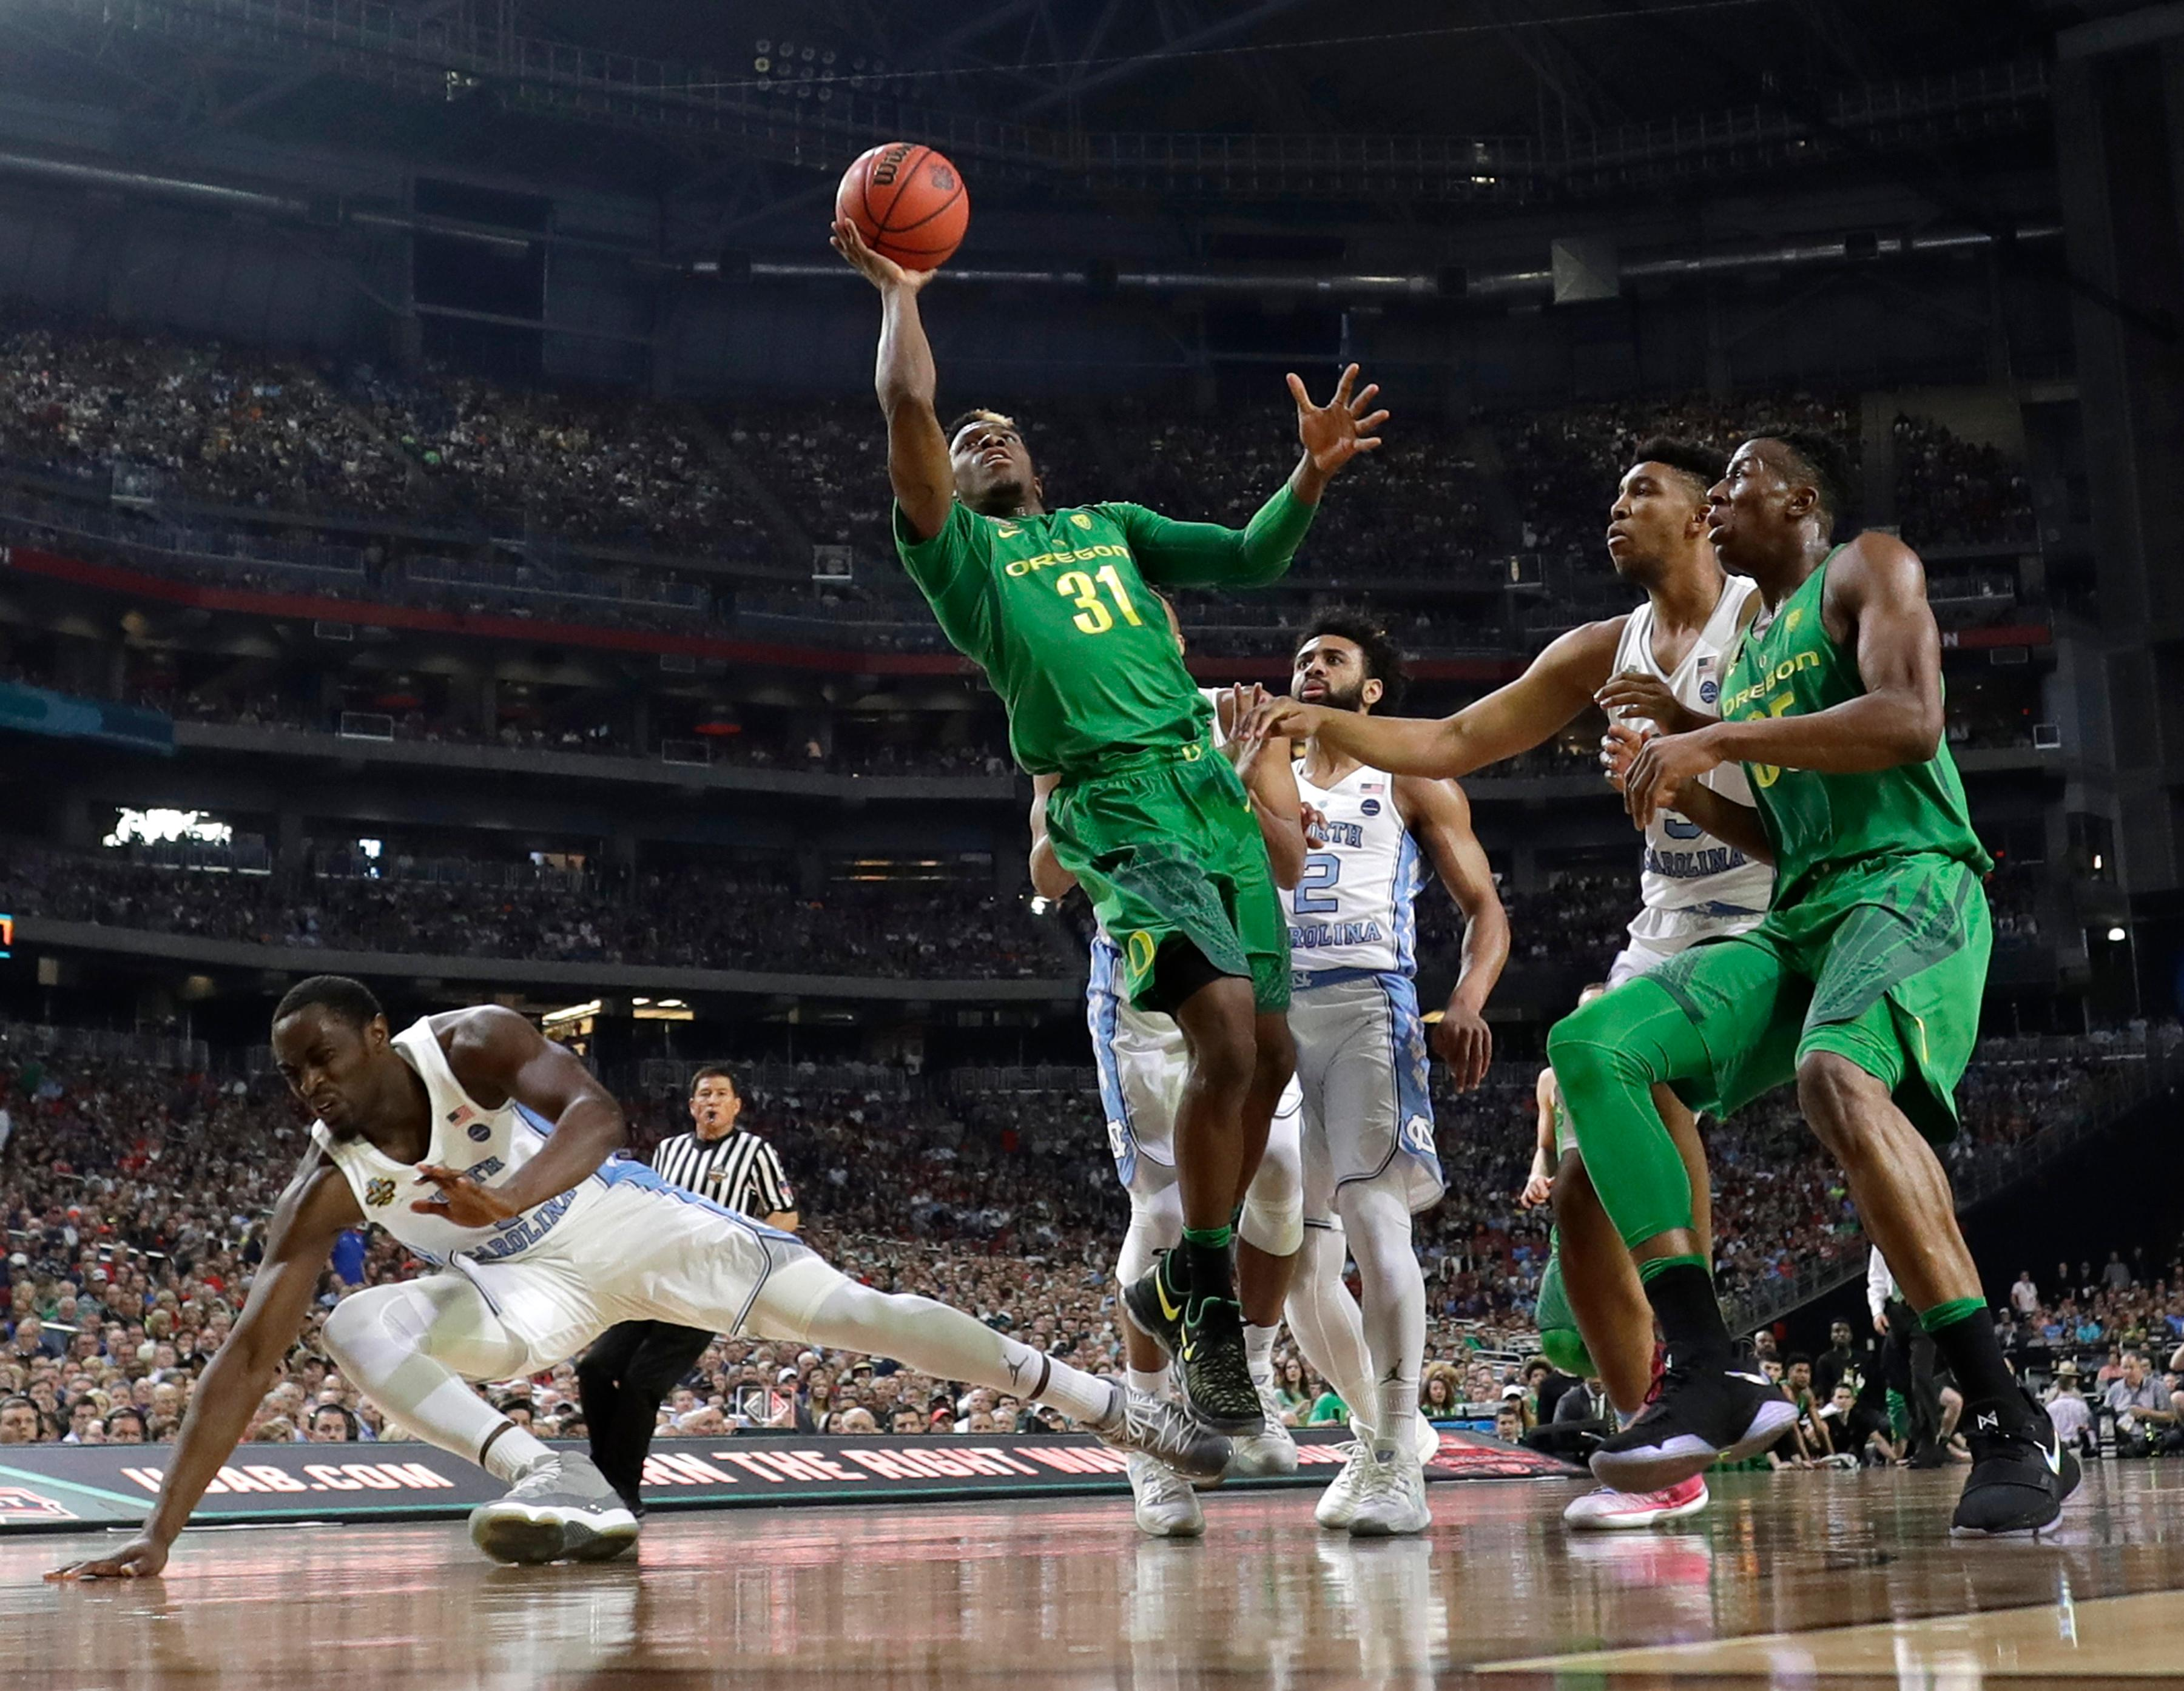 Oregon guard Dylan Ennis (31) drives to the basket over North Carolina forward Theo Pinson, left, during the first half in the semifinals of the Final Four NCAA college basketball tournament, Saturday, April 1, 2017, in Glendale, Ariz. (AP Photo/David J. Phillip)